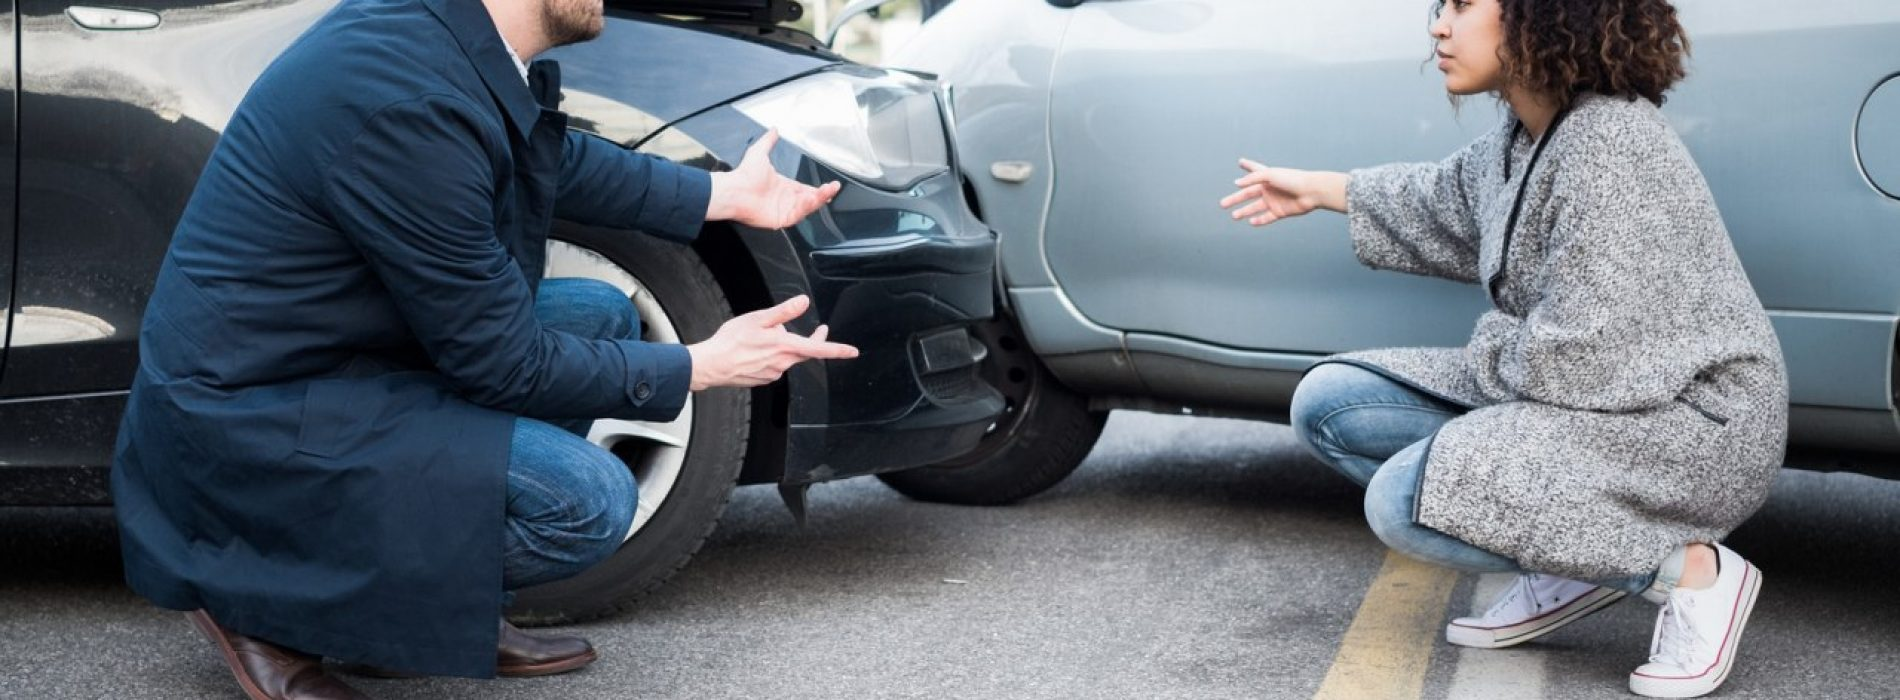 Why Look for Communication Skills in a Car Accident Lawyer